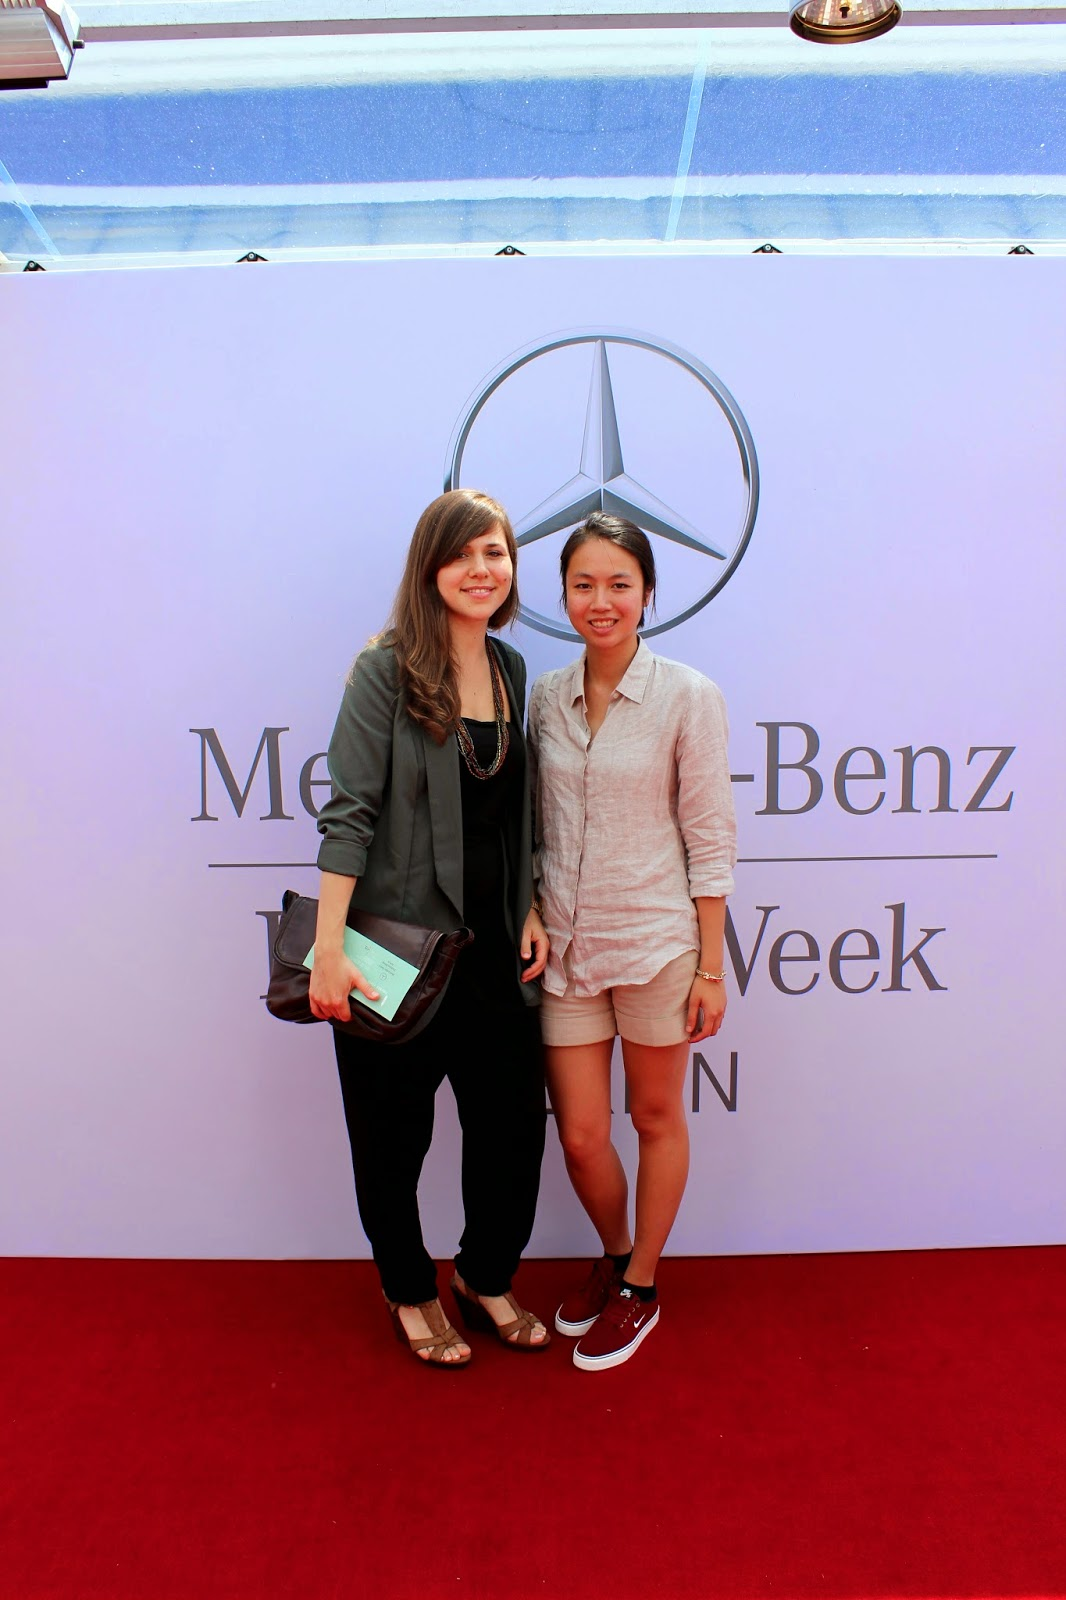 mbfwss15+outfit+9.jpg